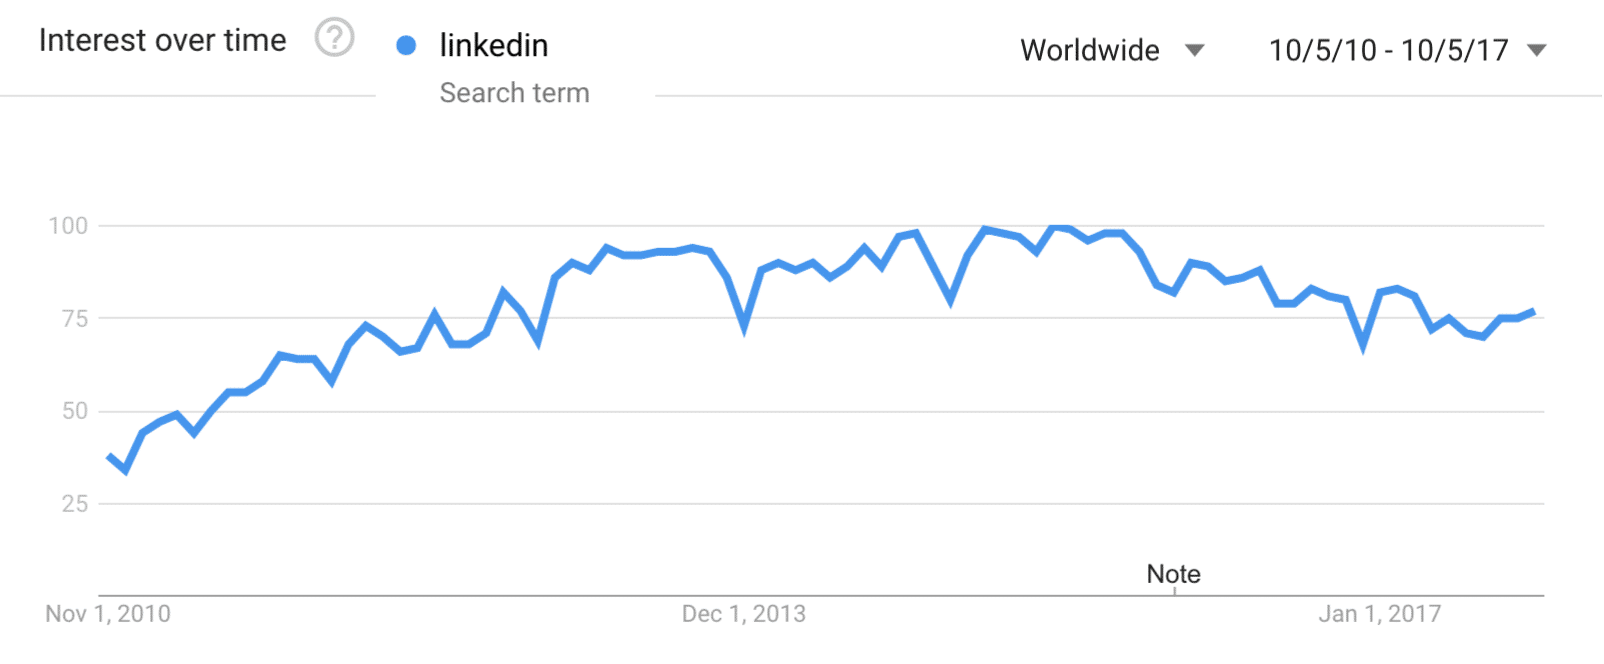 Google Search Trends - LinkedIn